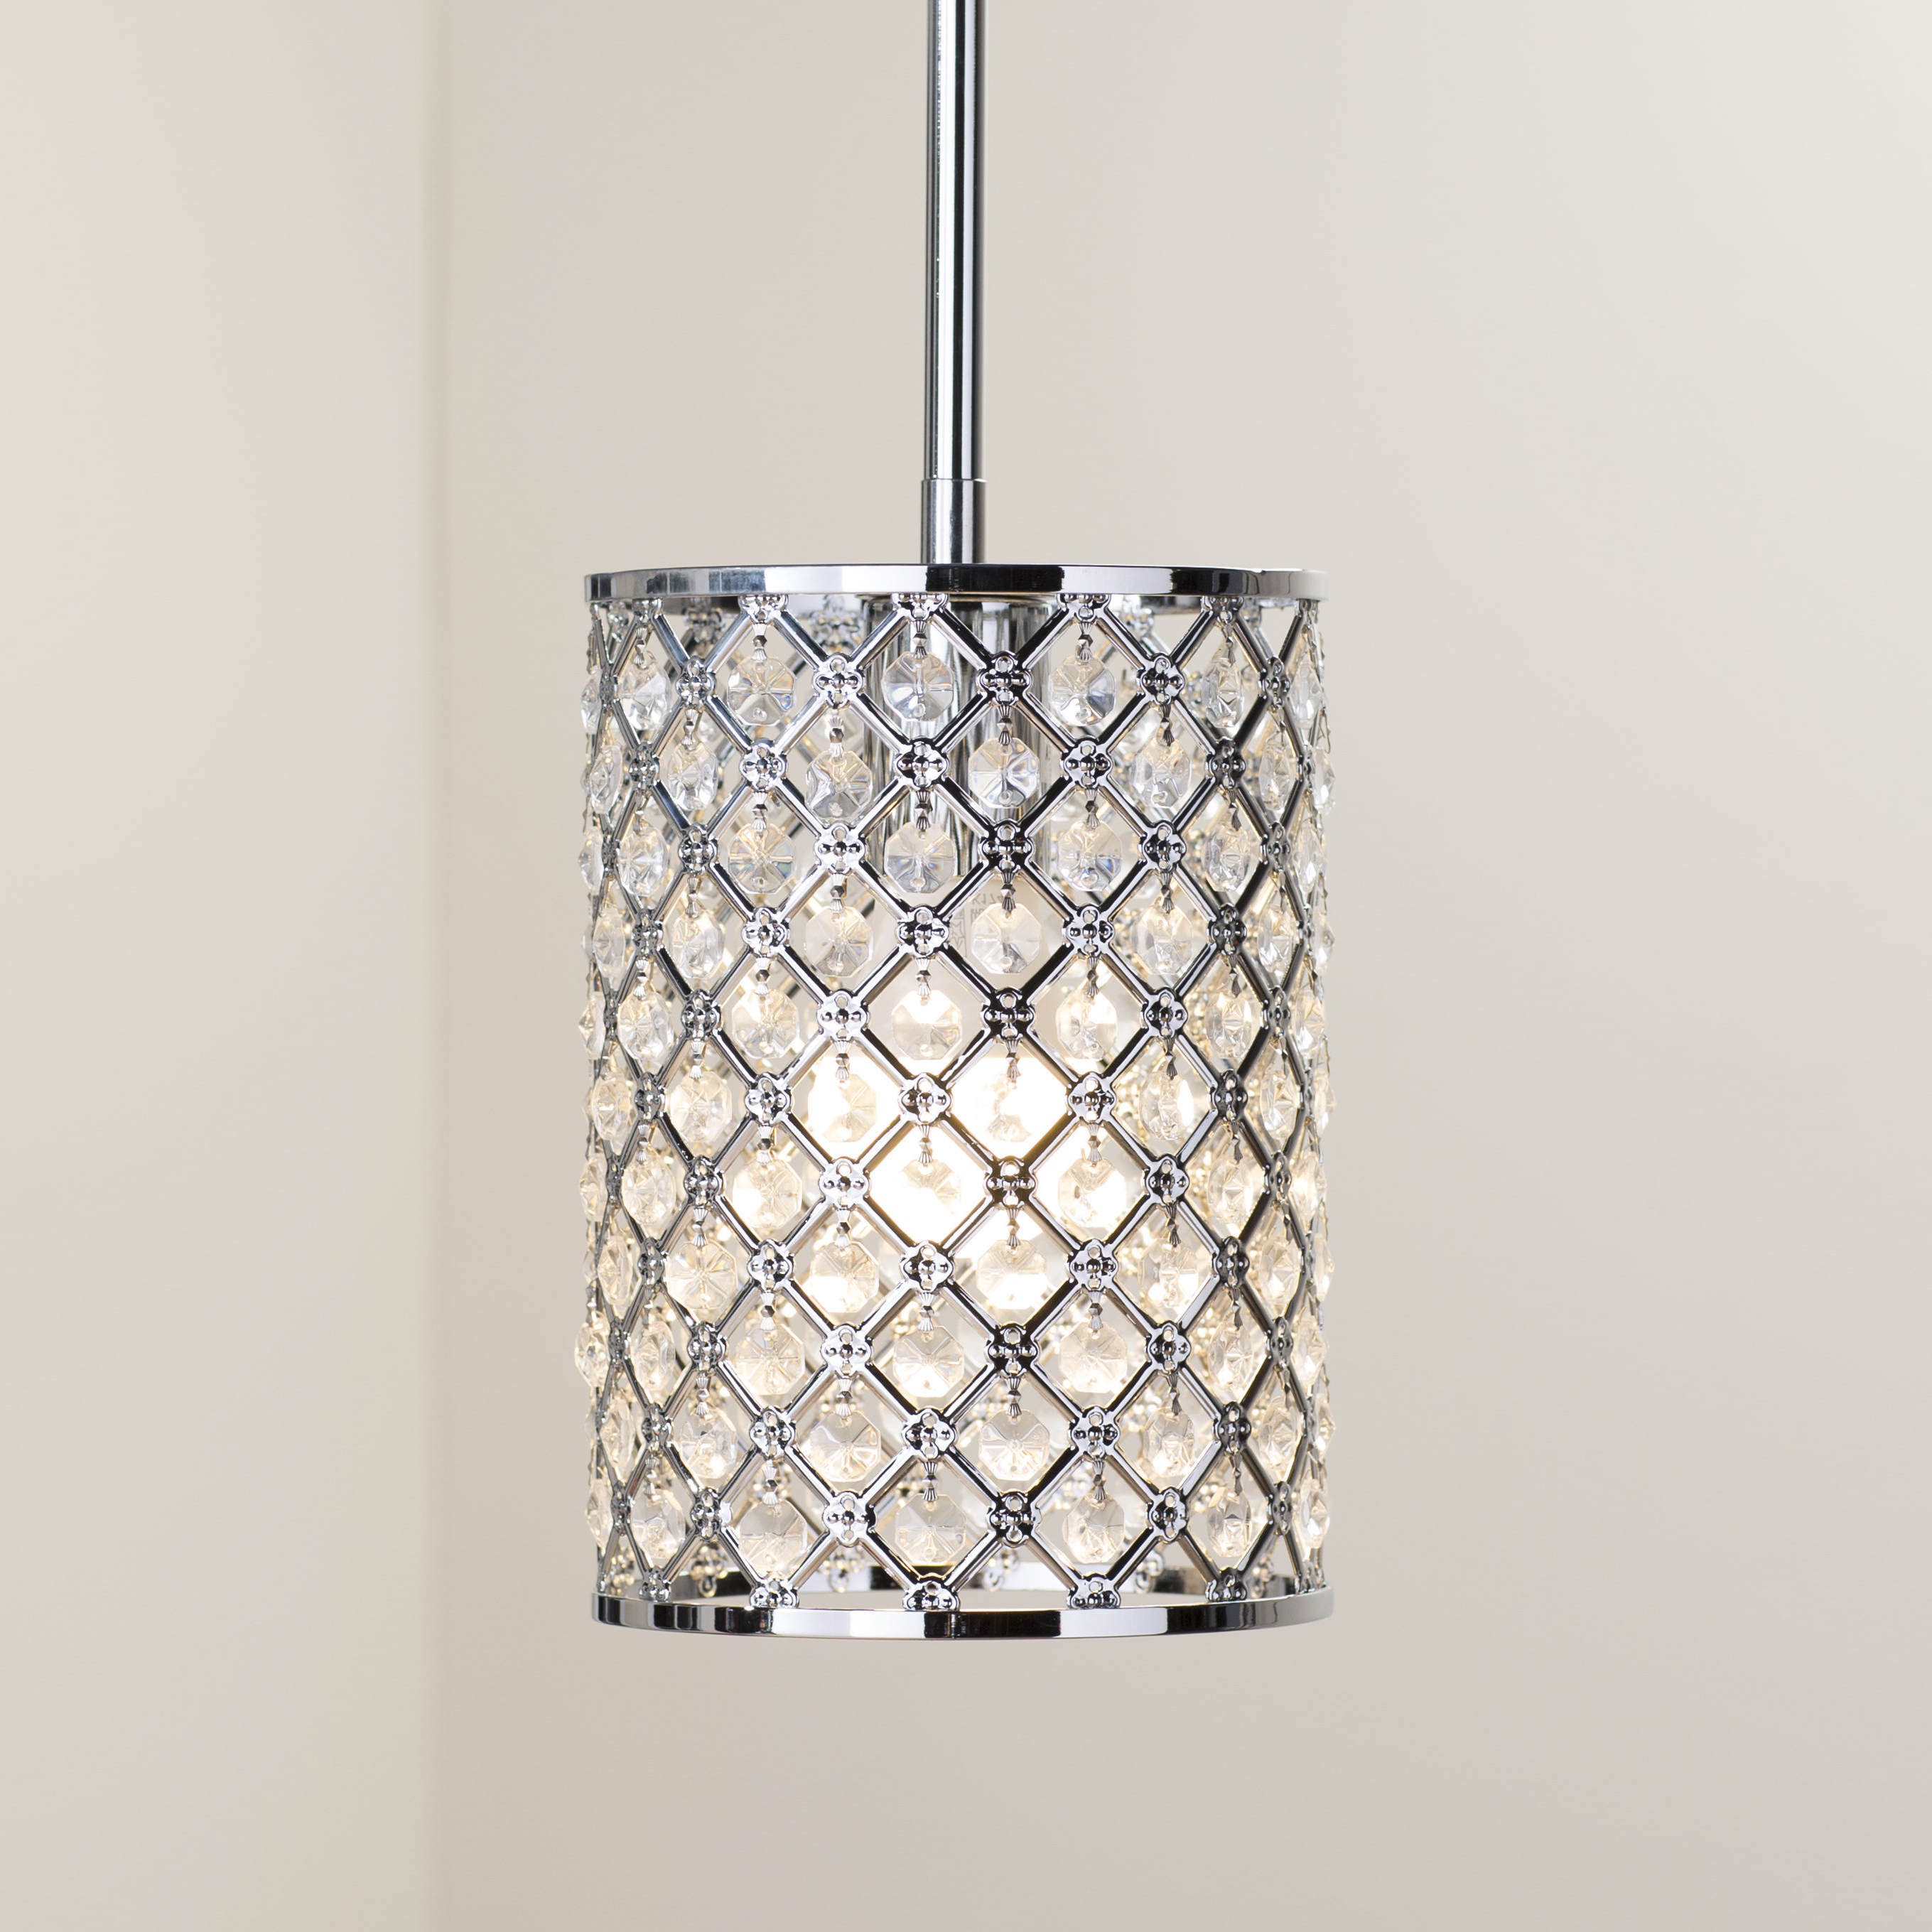 Araujo 1 Light Crystal Pendant Regarding Latest Hurst 1 Light Single Cylinder Pendants (View 3 of 20)